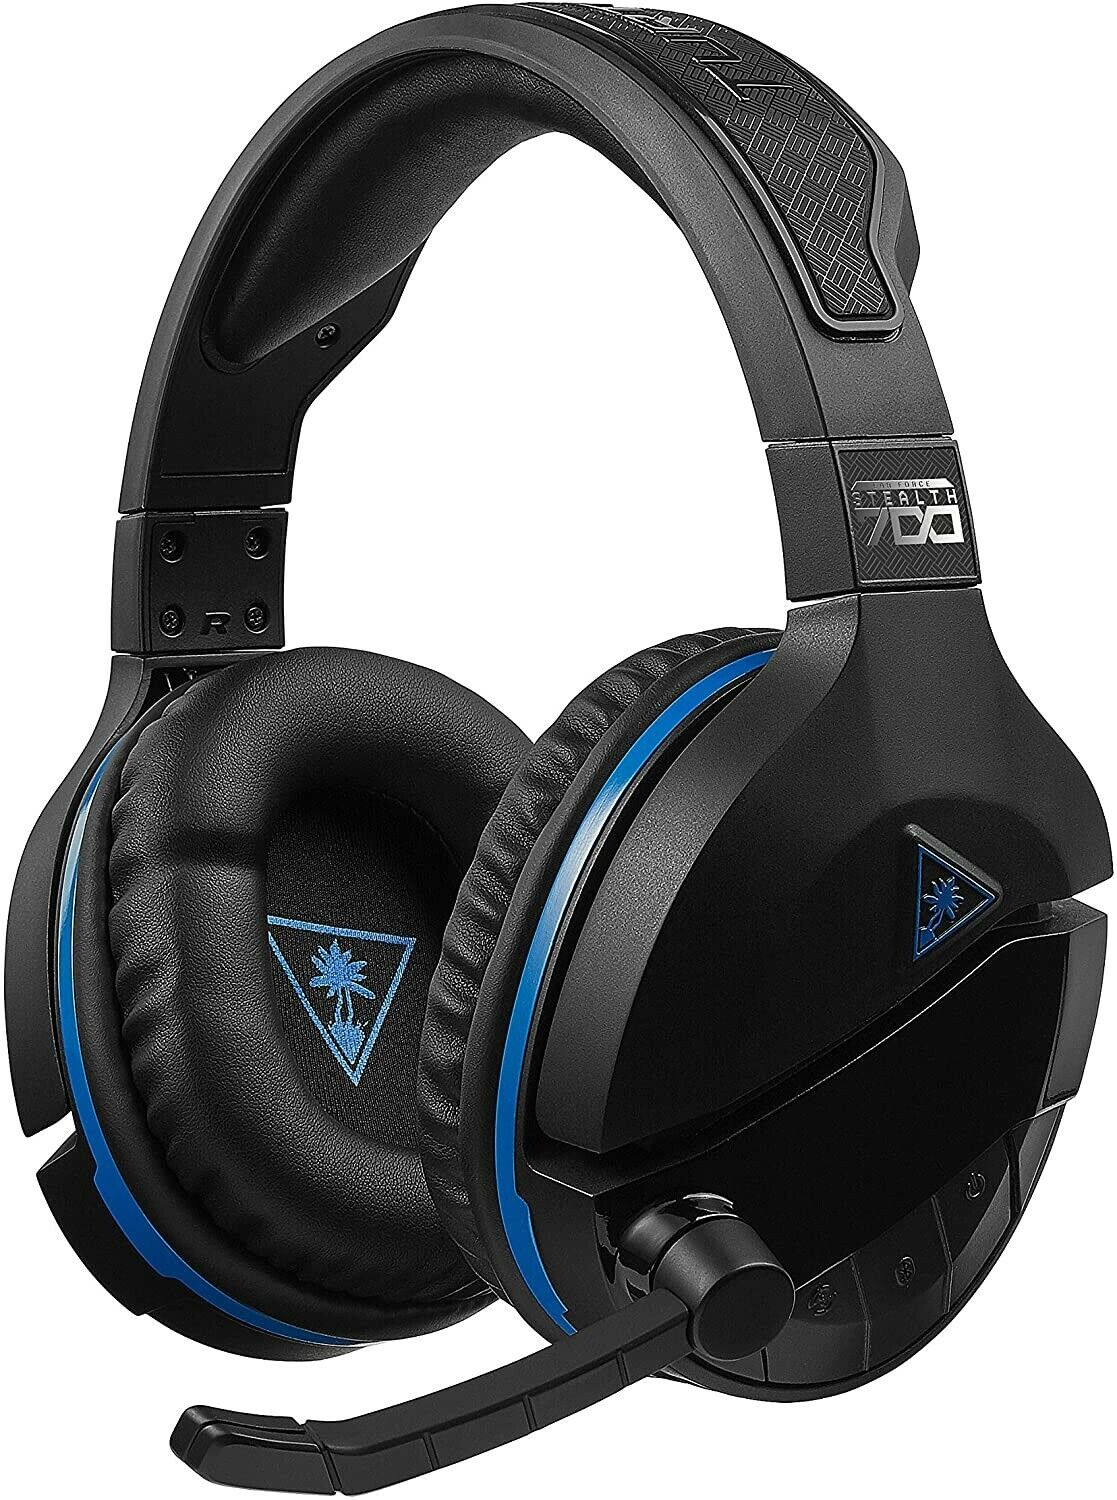 Turtle Beach Stealth 700 Gen1 Wireless Gaming Headset for PlayStation 4/5